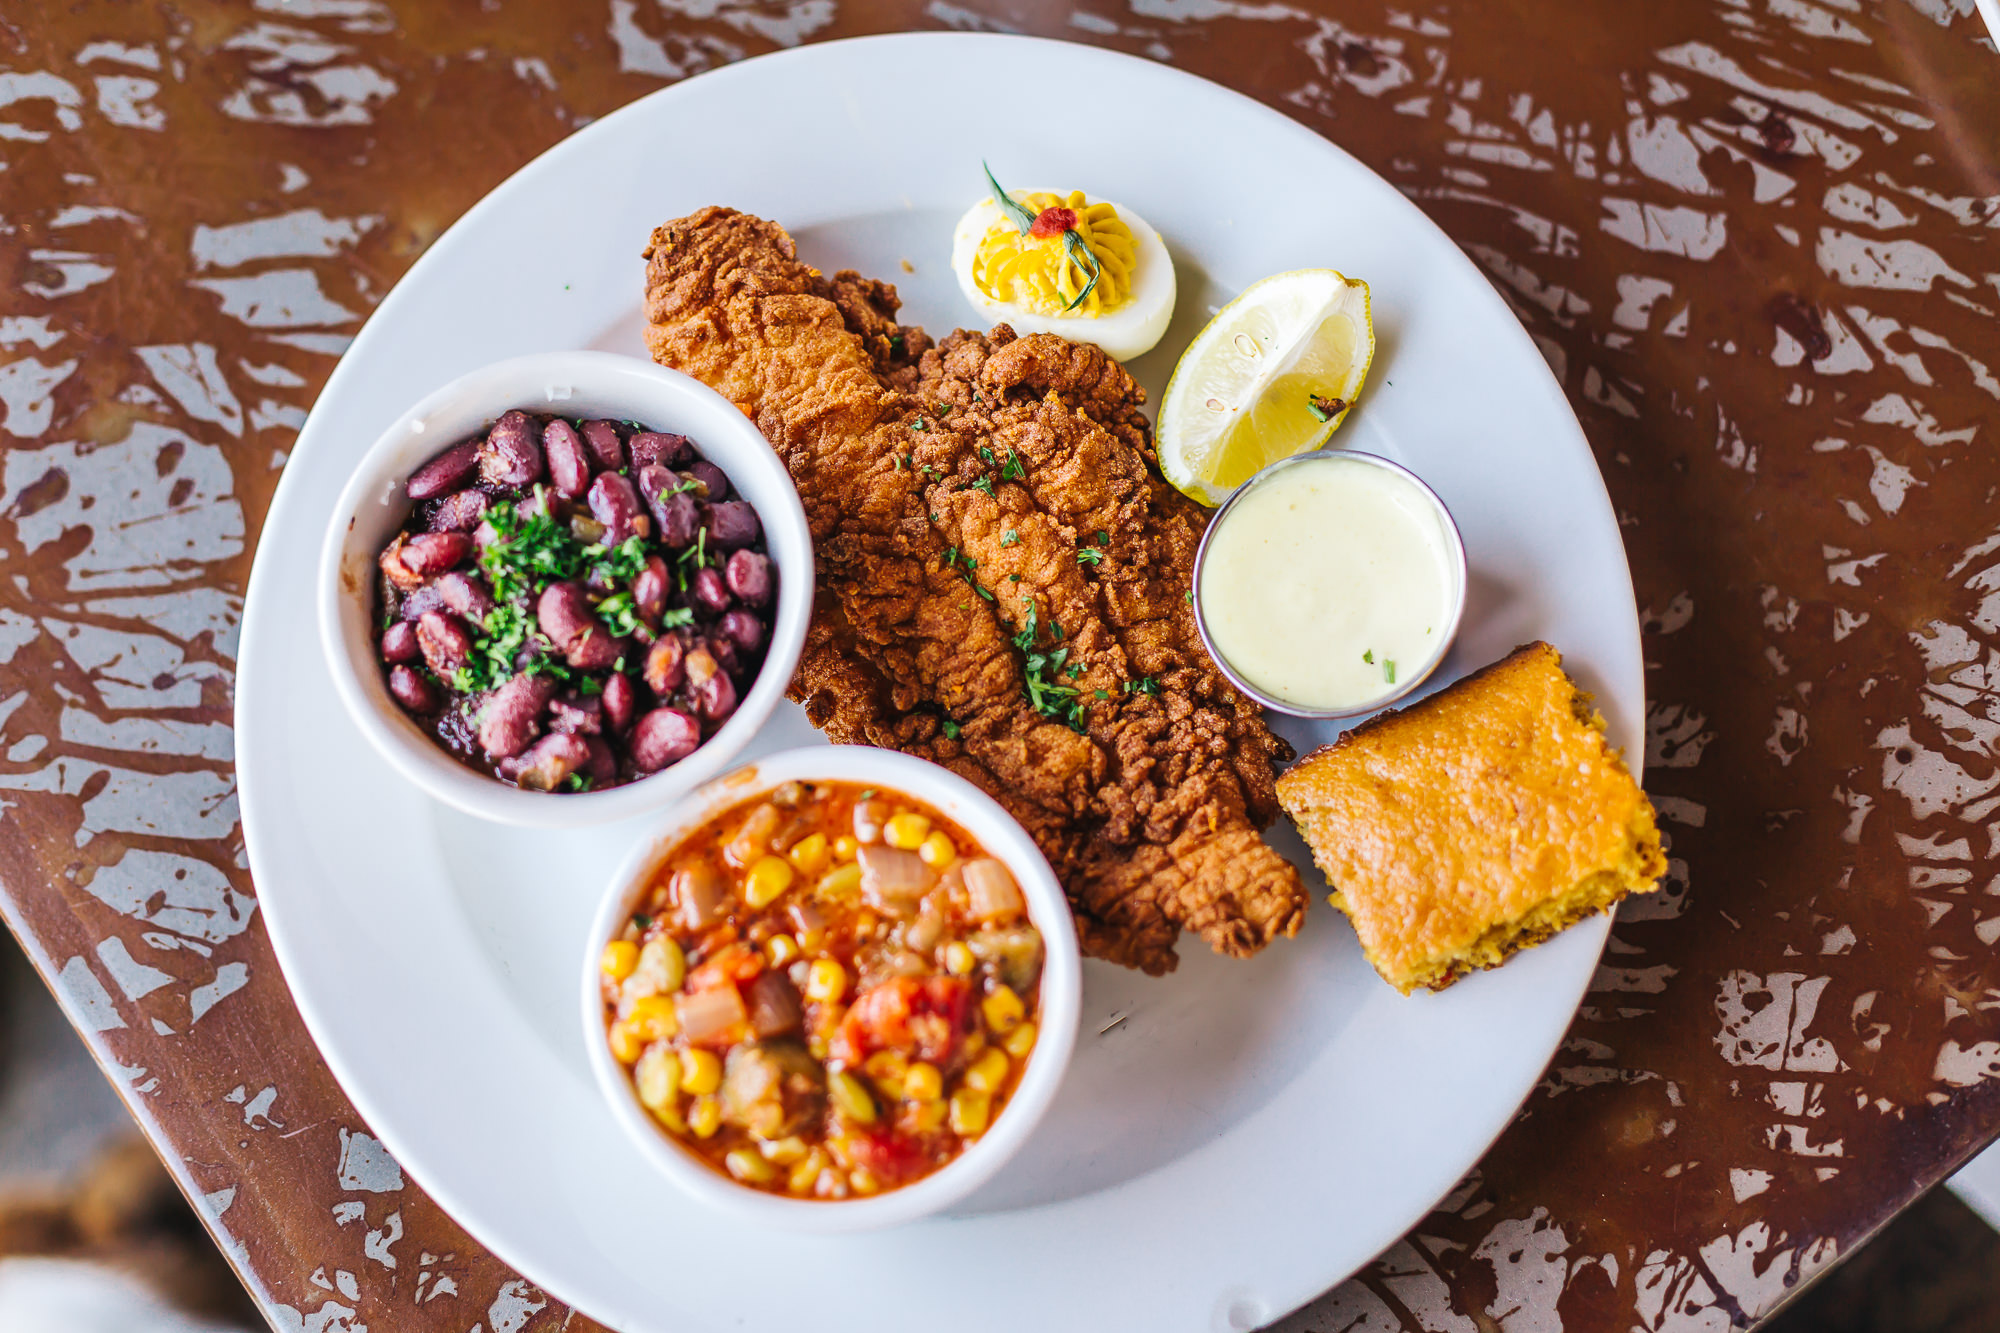 Fried catfish with red beans & rice, okra succotash, cornbread and deviled egg